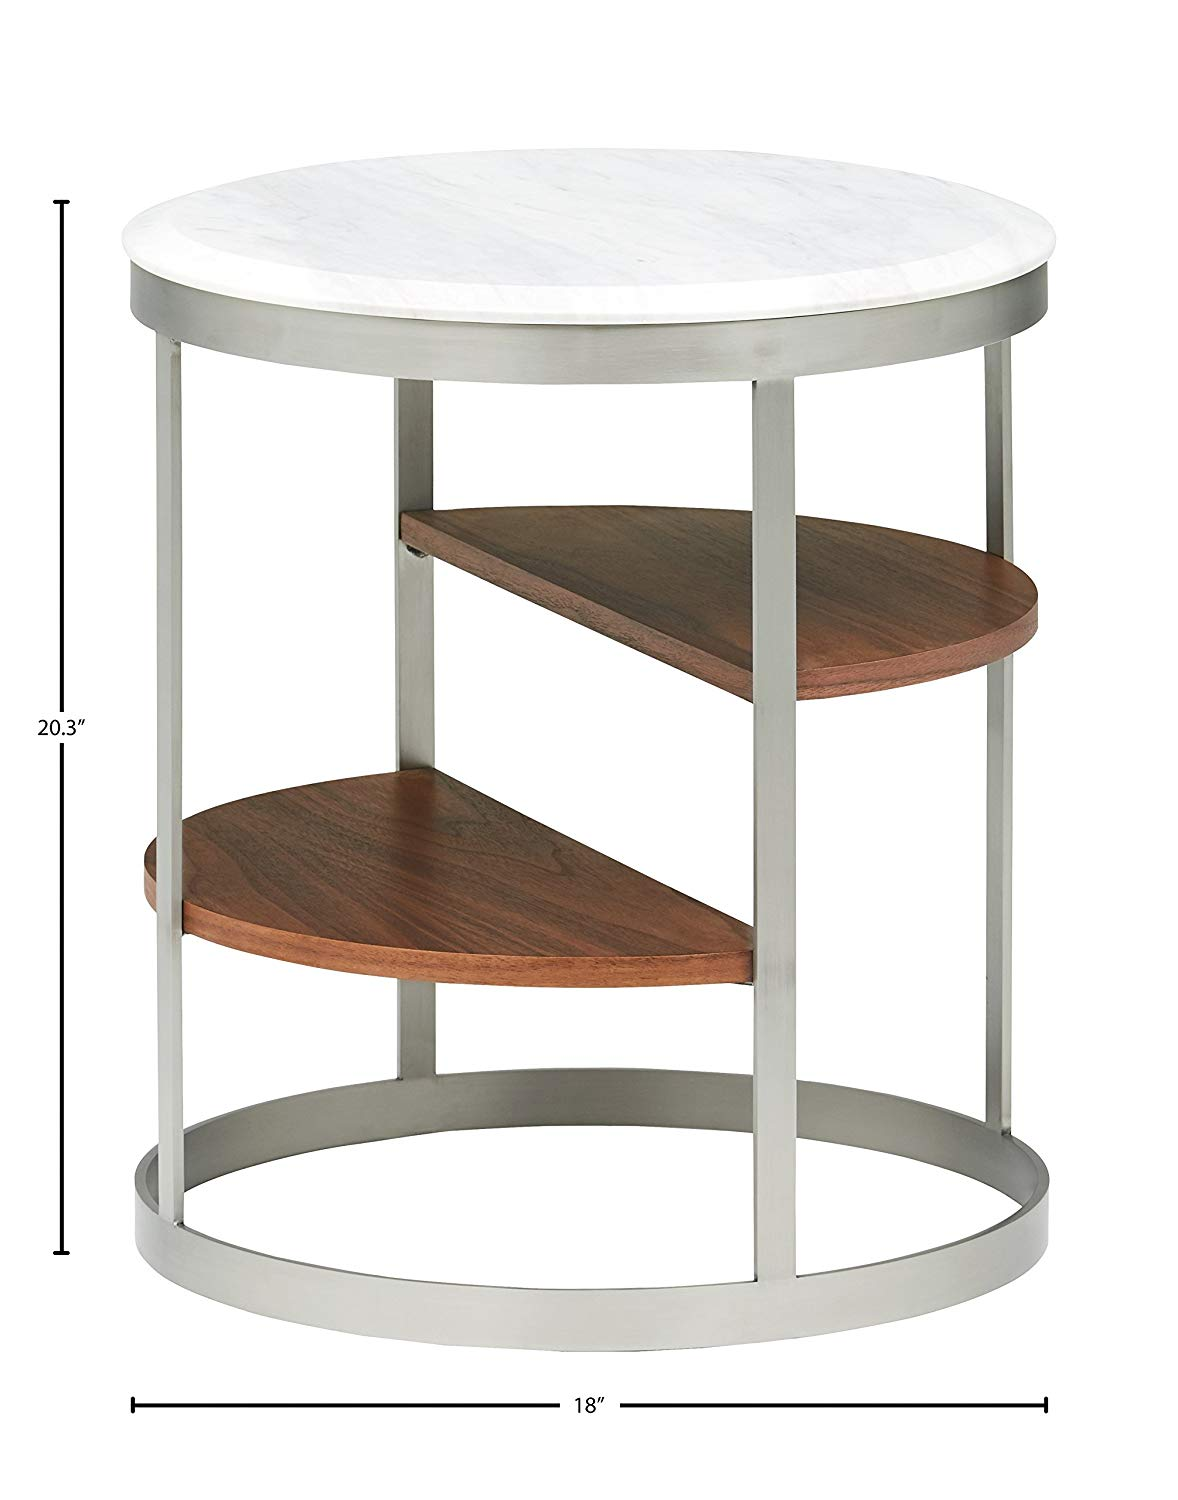 decorating round wooden white table for covers threshold wood accent ideas unfinished tablecloth side cover faux pedestal full size kitchen barn door top foyer lamps bunnings